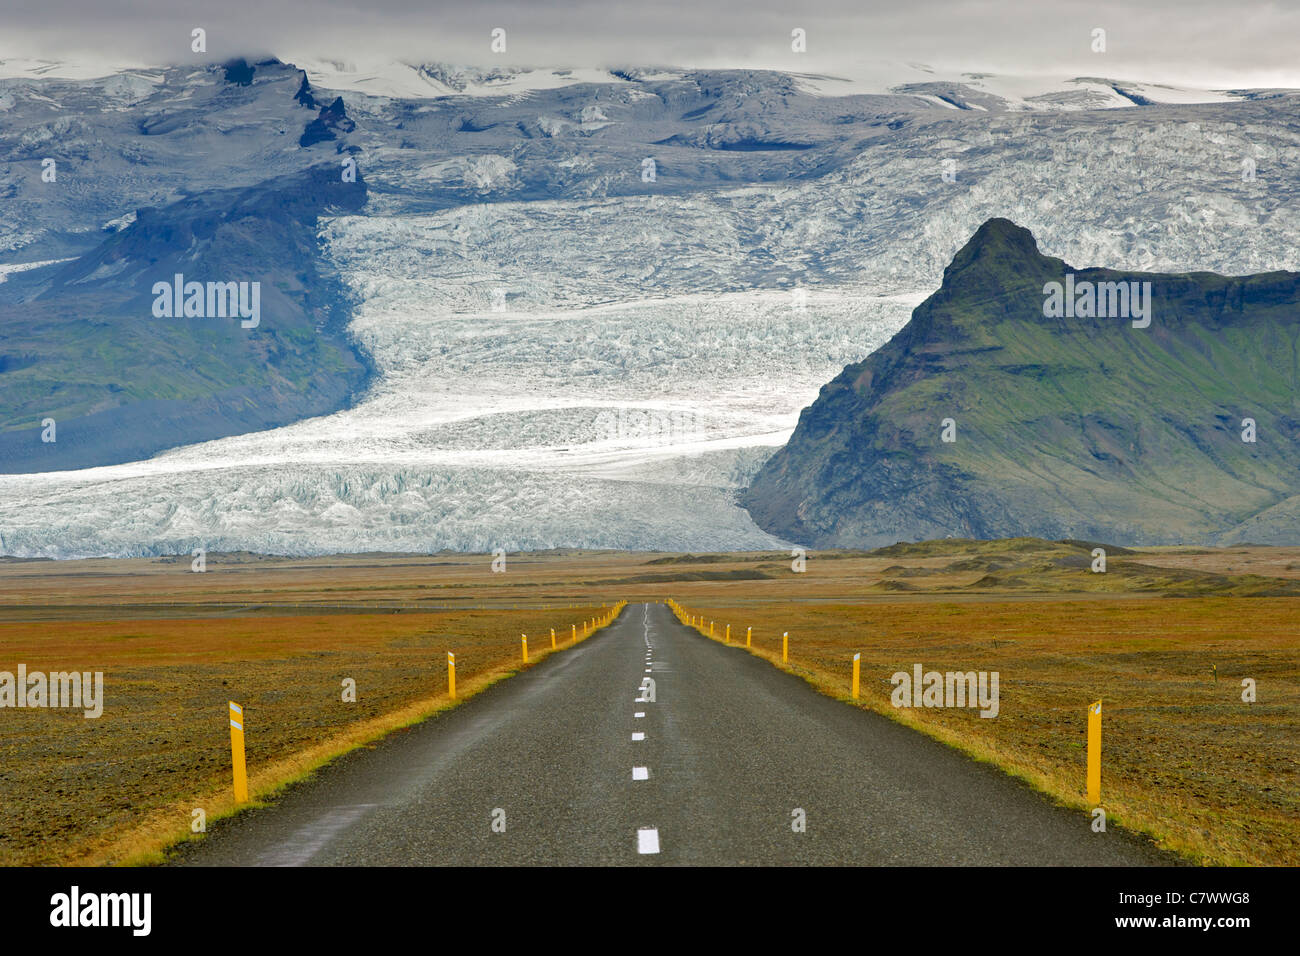 The Icelandic ring road and slopes of Iceland's highest mountain Hvannadalshnúkur (2110m), part of the - Stock Image